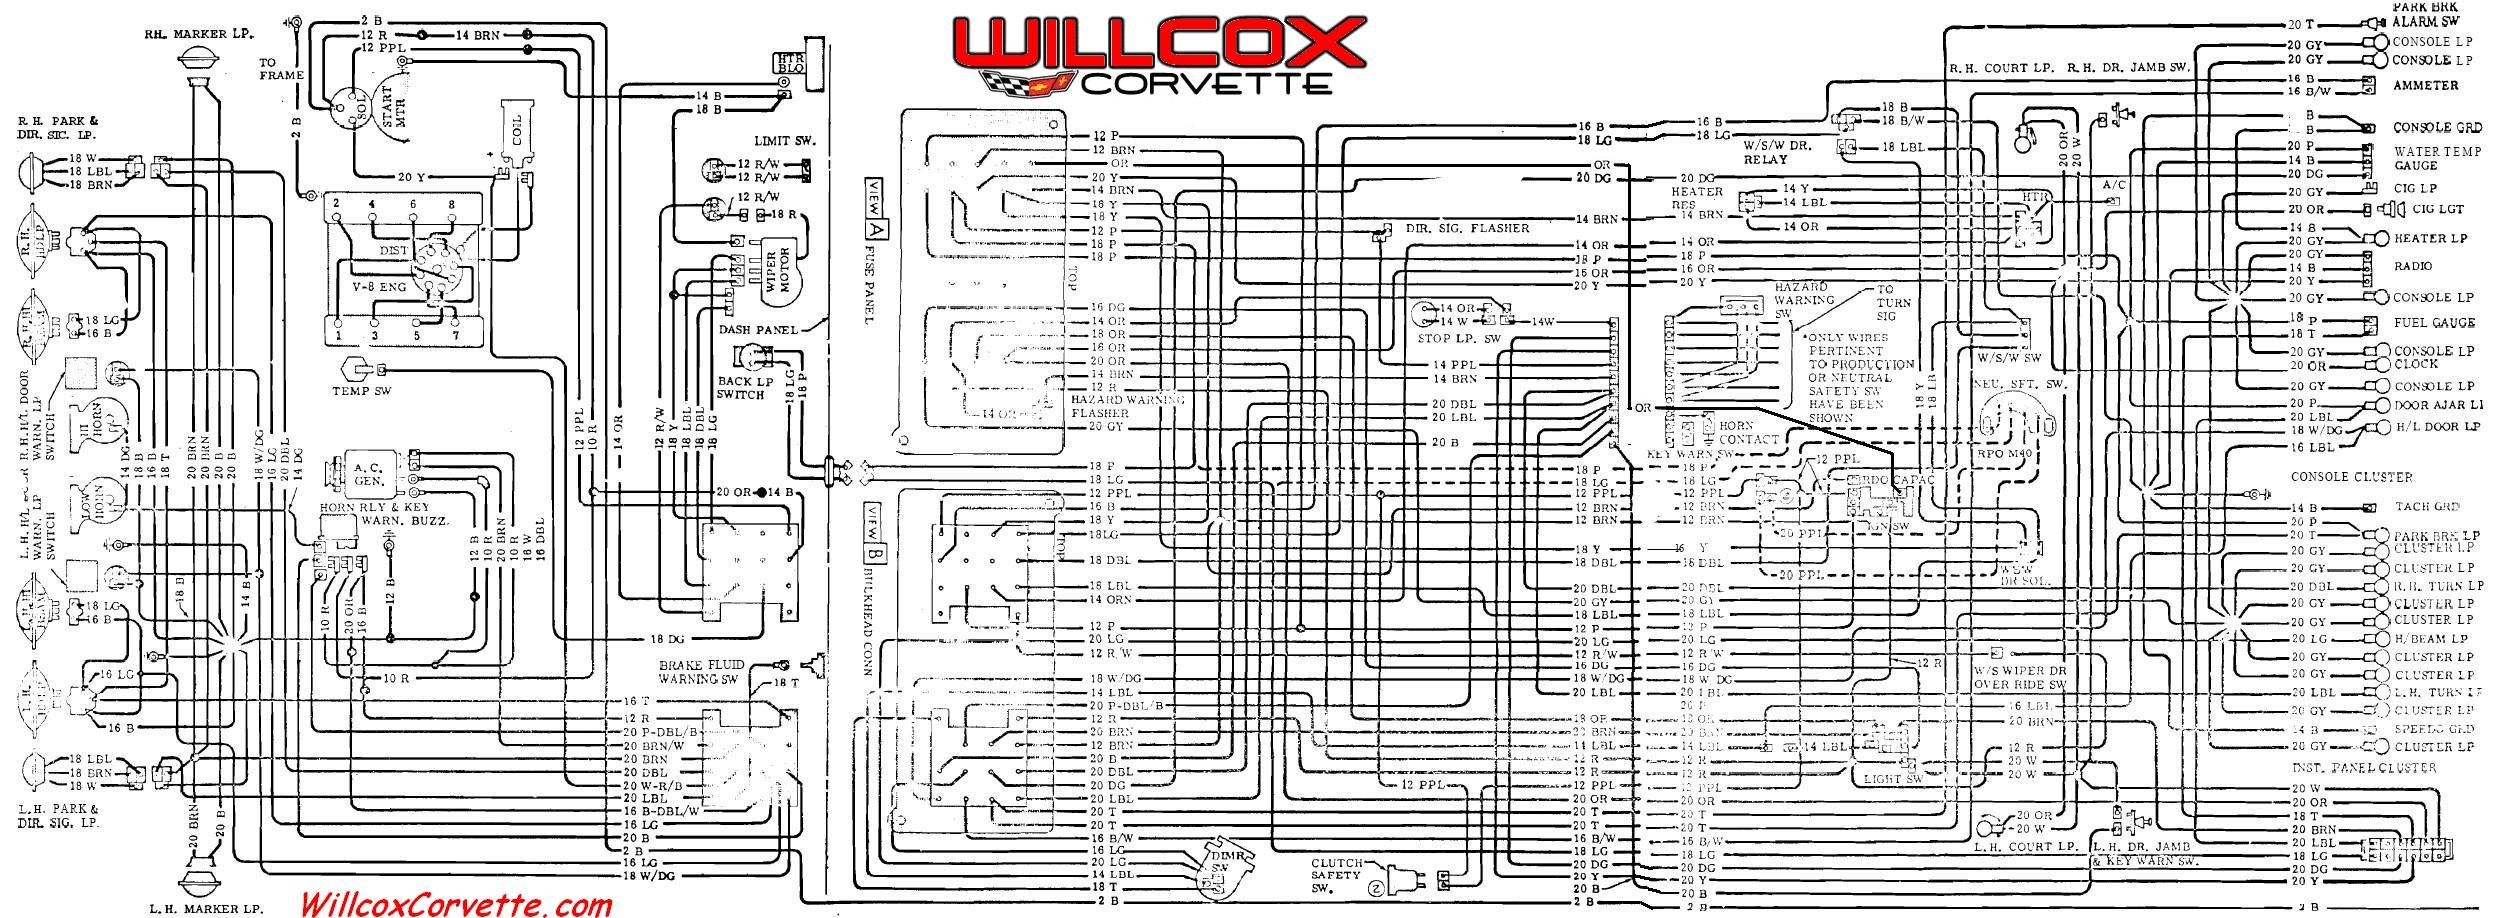 hight resolution of citroen xm v6 wiring diagram wiring diagram datasourcewrg 5324 citroen xantia wiring diagram c3 wiring